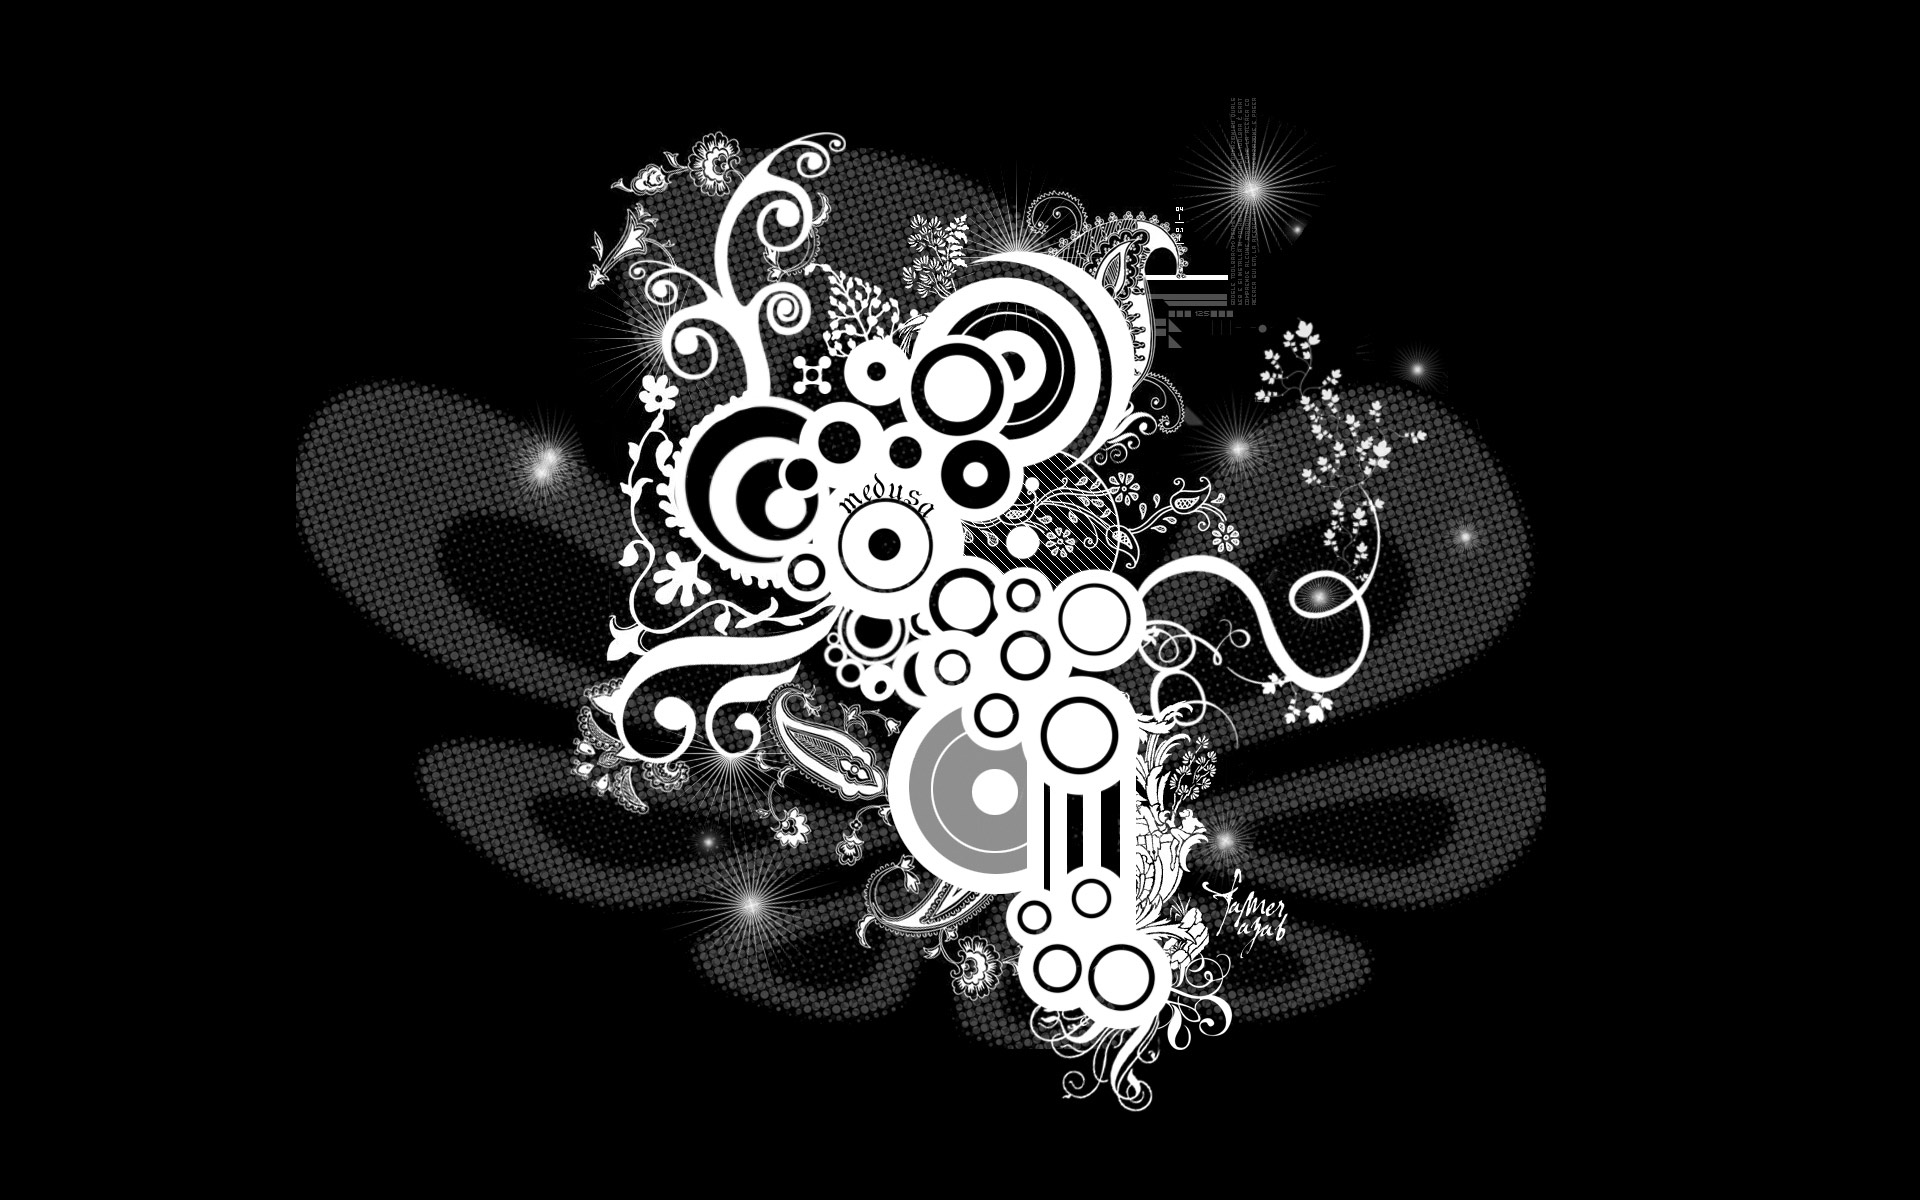 30 hd black wallpapers for Black and white wallpaper designs